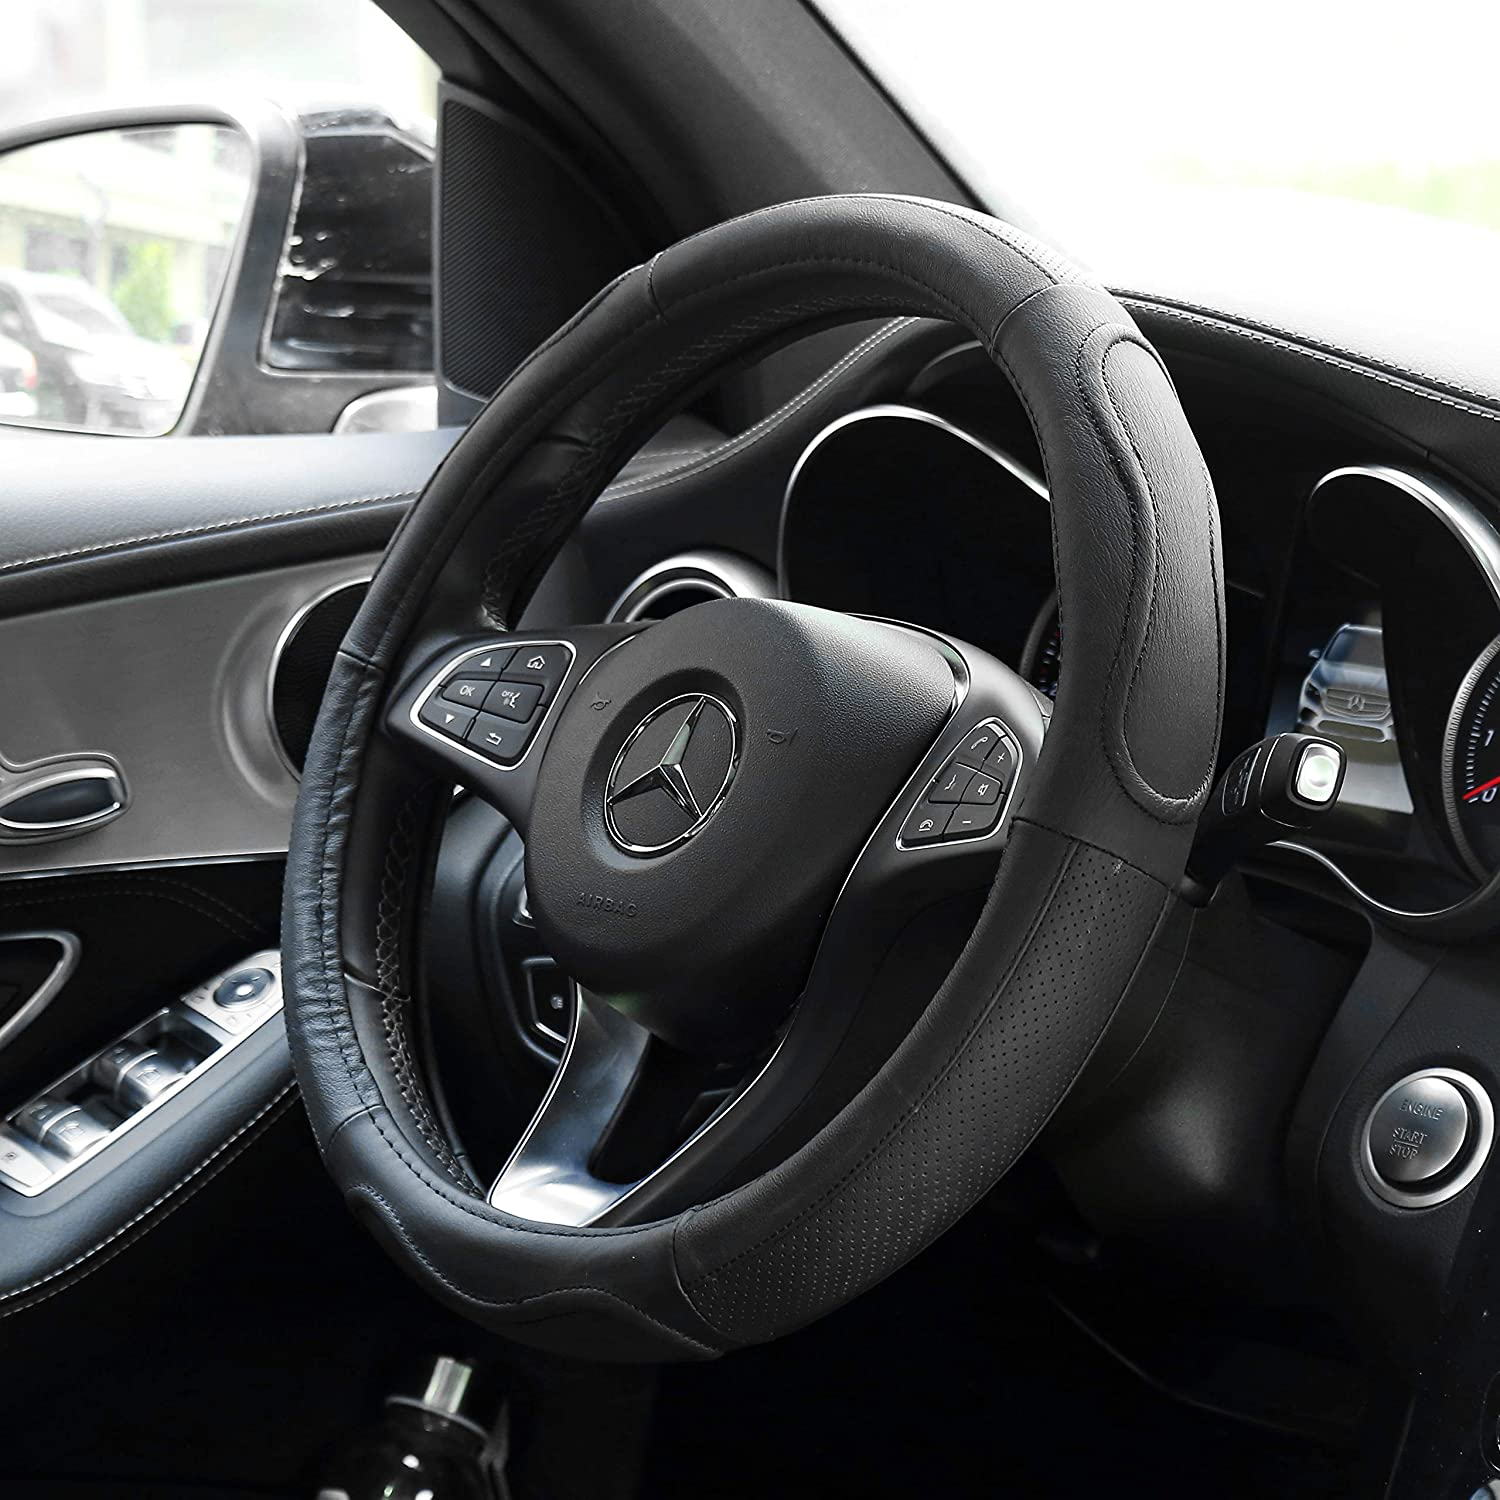 5559033975 SNJUE Black Microfiber Leather Auto Car Steering Wheel Cover Universal 15 inch for Car Truck SUV Black